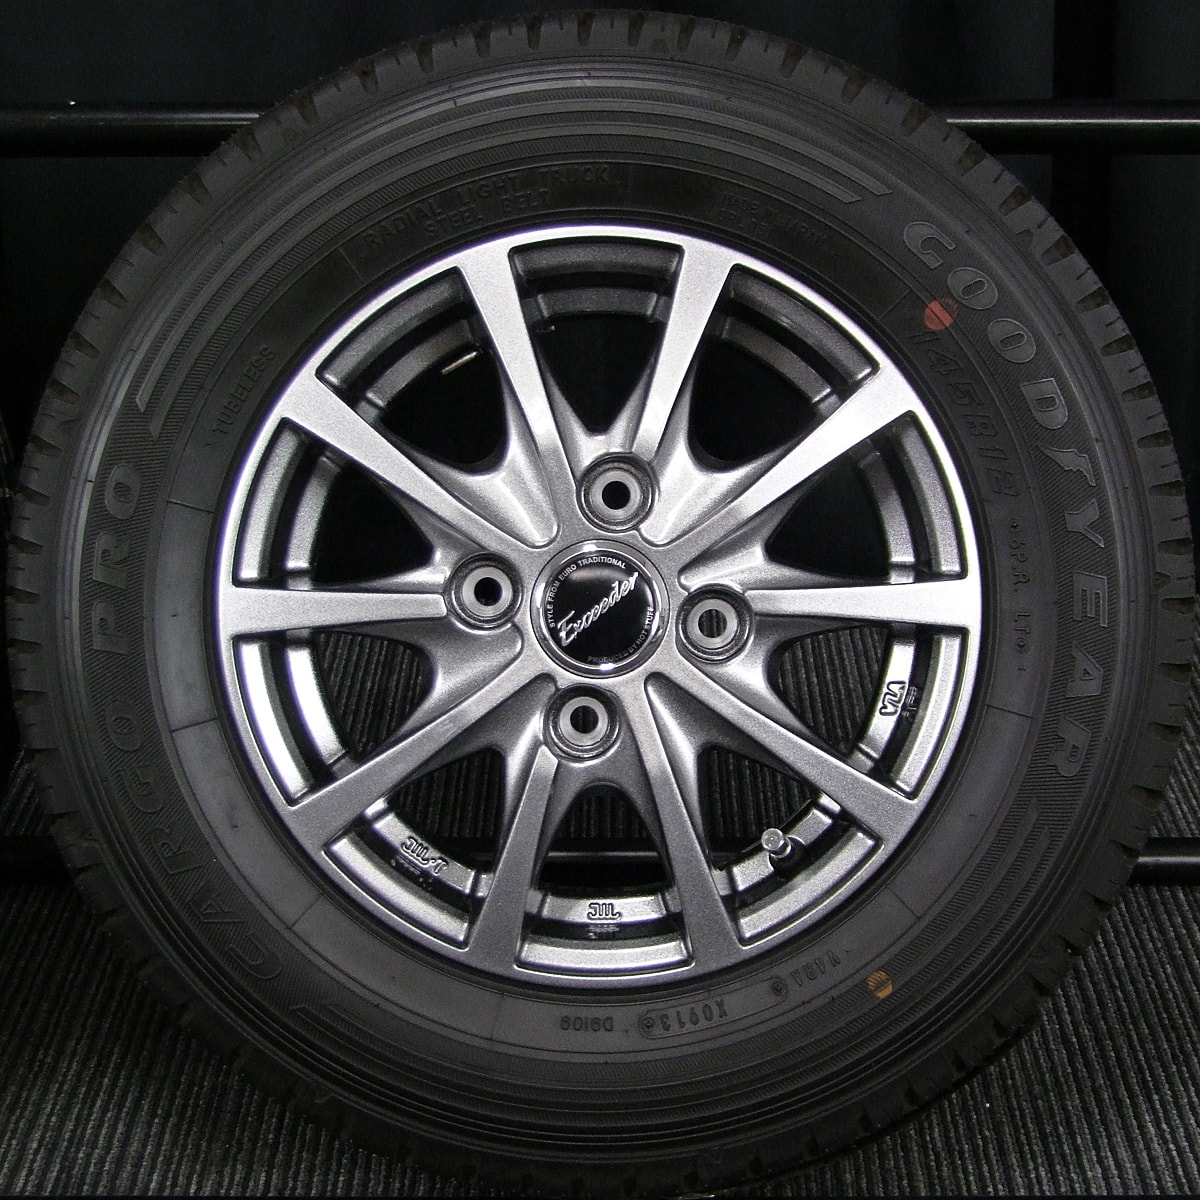 HOT STUFF Exceeder E03 ダークシルバー GOODYEAR CARGO PRO 145R12 6PR LT 4本SET